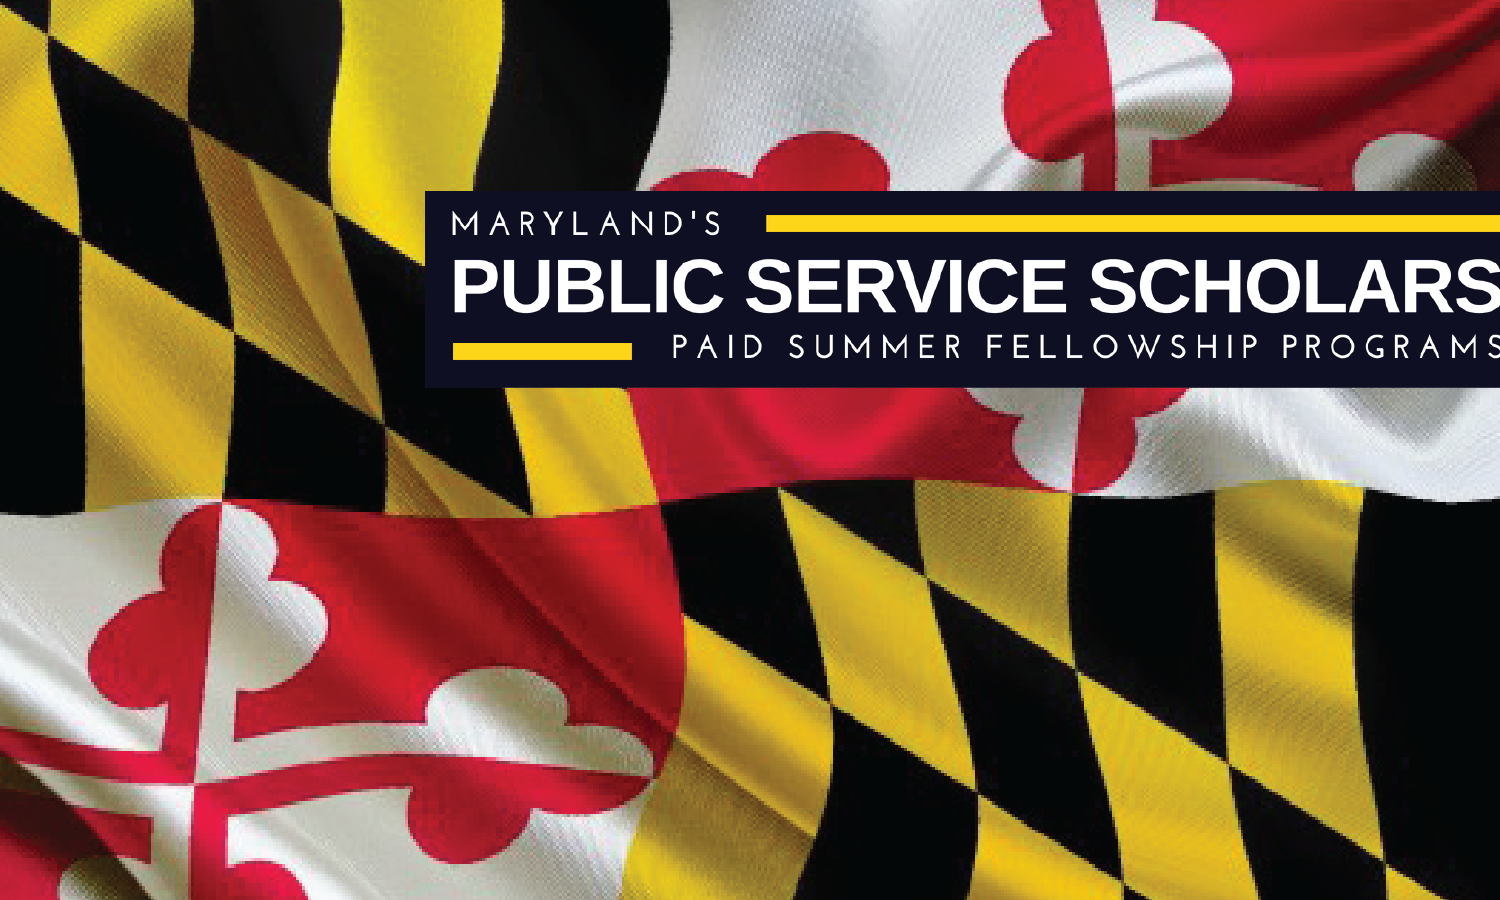 Maryland's Public Service Scholars Fellowships